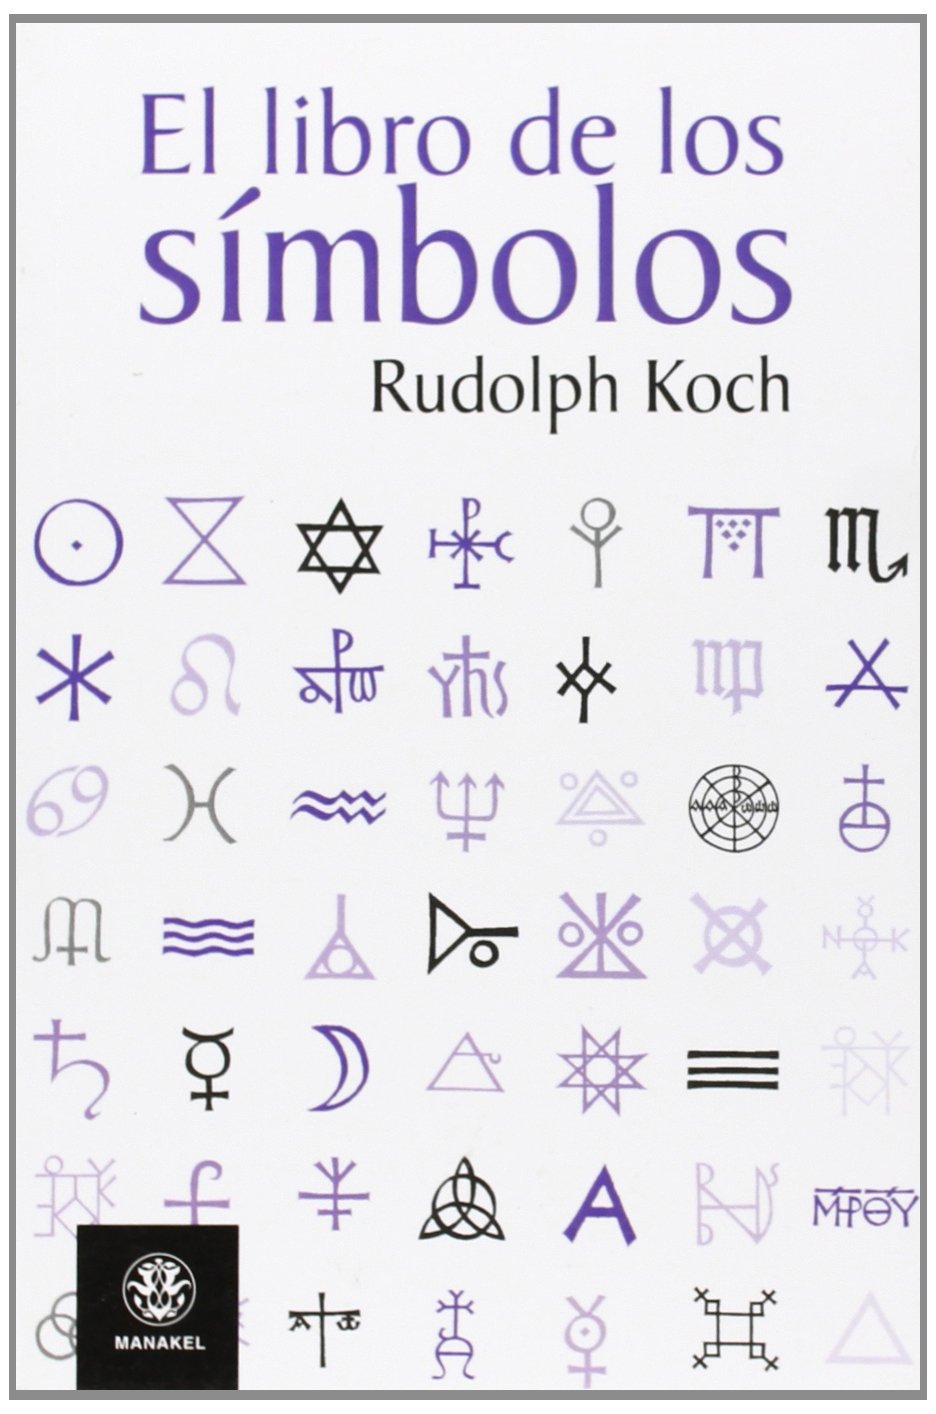 EL LIBRO DE LOS SÍMBOLOS (Spanish Edition): Rudolf Koch: 9788498271089: Amazon.com: Books